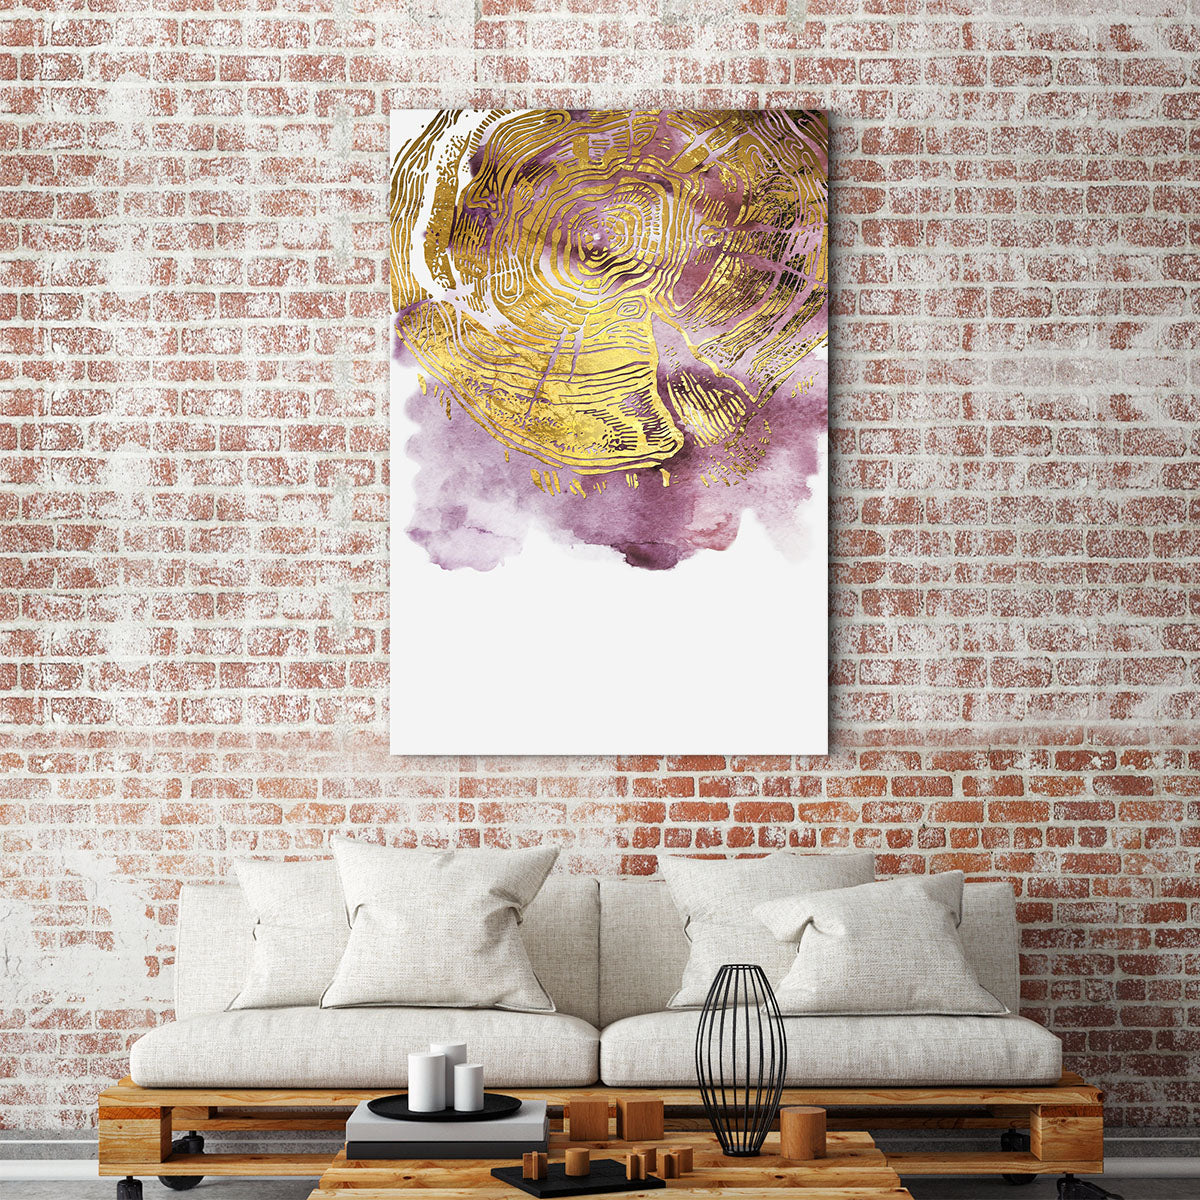 Gentle blooming abstract decorative painting 003